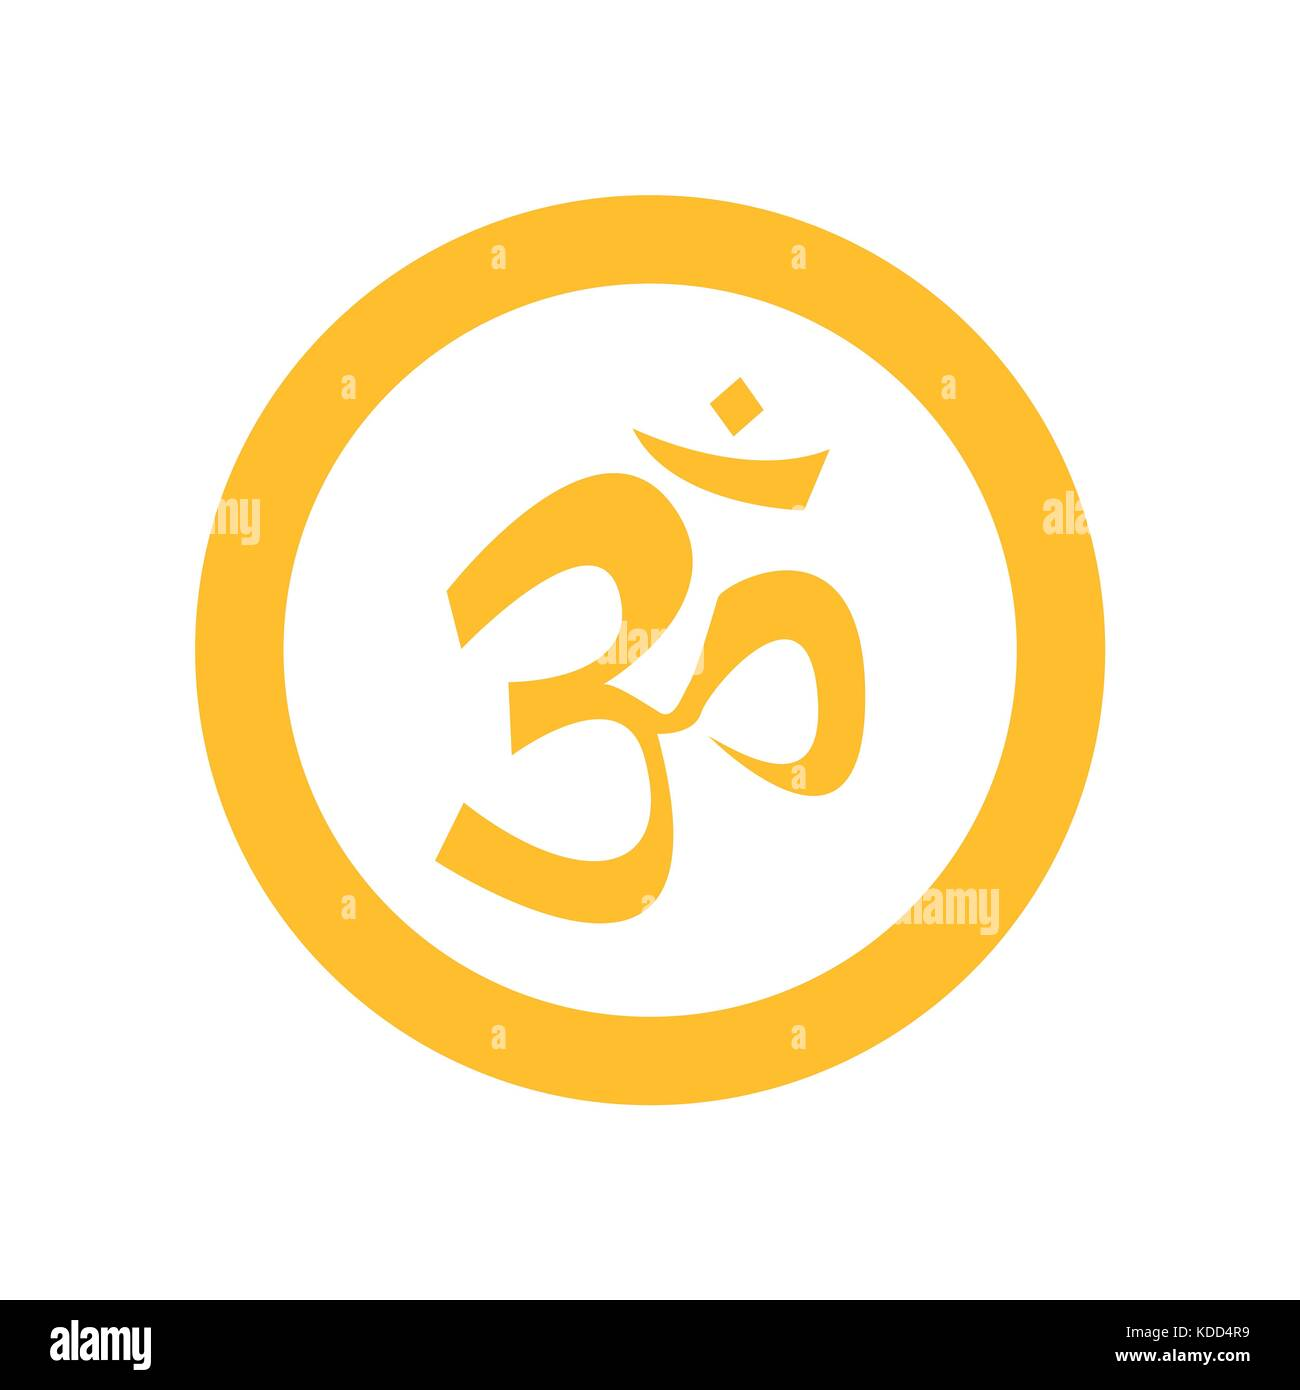 Om design stock photos om design stock images alamy simple circular yellow om symbol stock image biocorpaavc Images